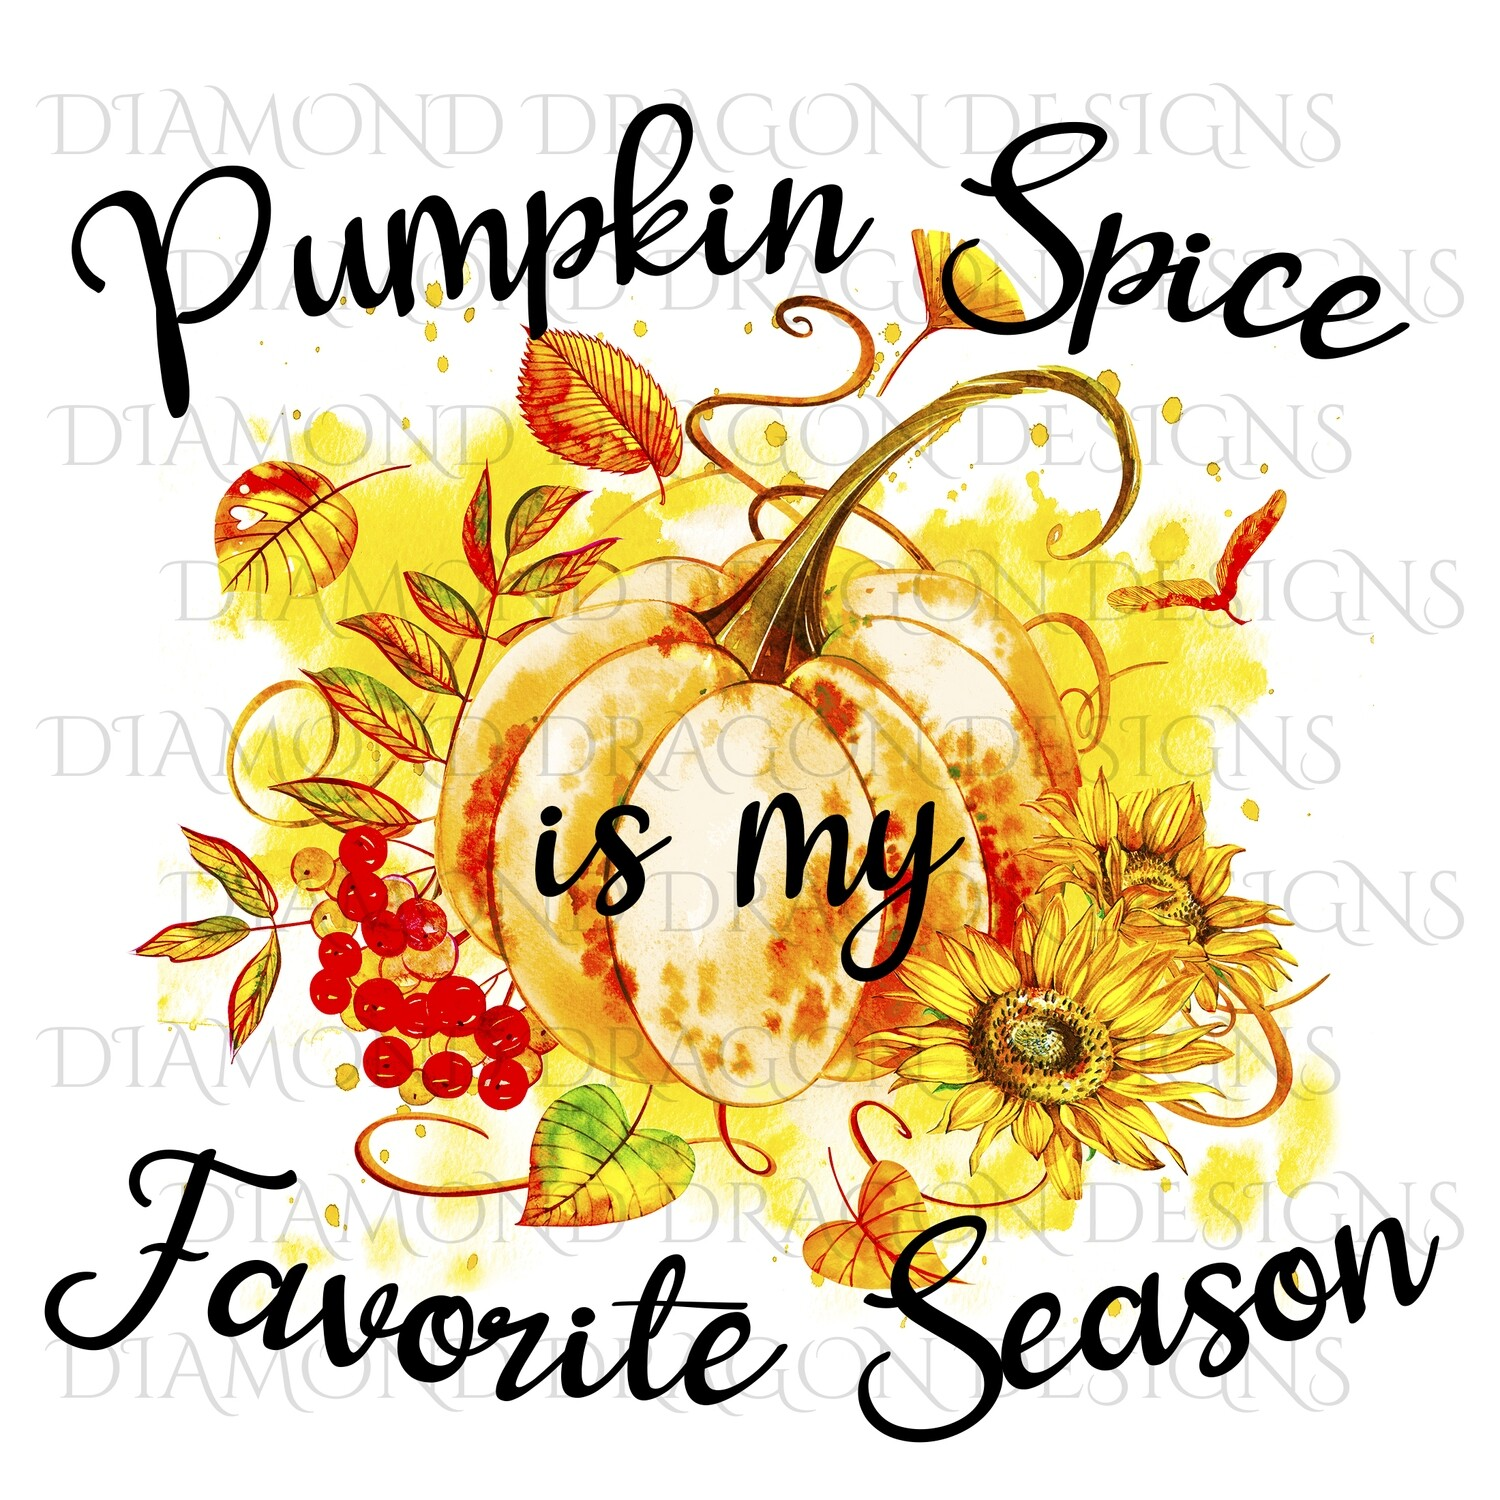 Halloween - Fall, Pumpkin Spice is My Favorite Season, Watercolor Pumpkin, Digital Image